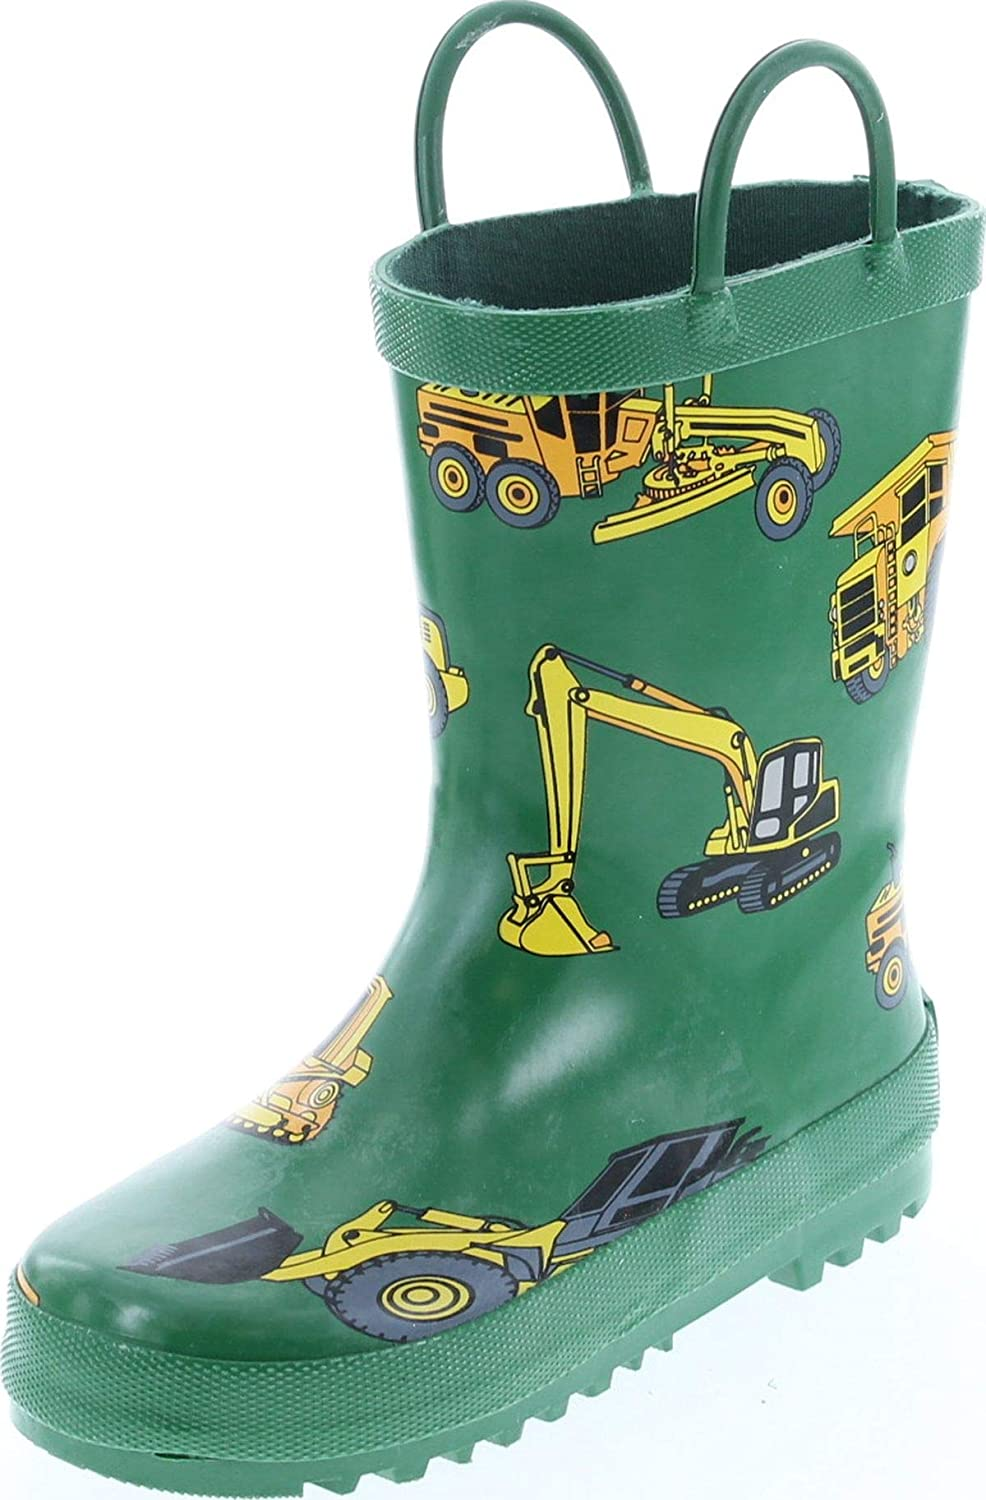 specialty shop Foxfire for Kids boys Green Equipment Rubber Construction Boots Limited price